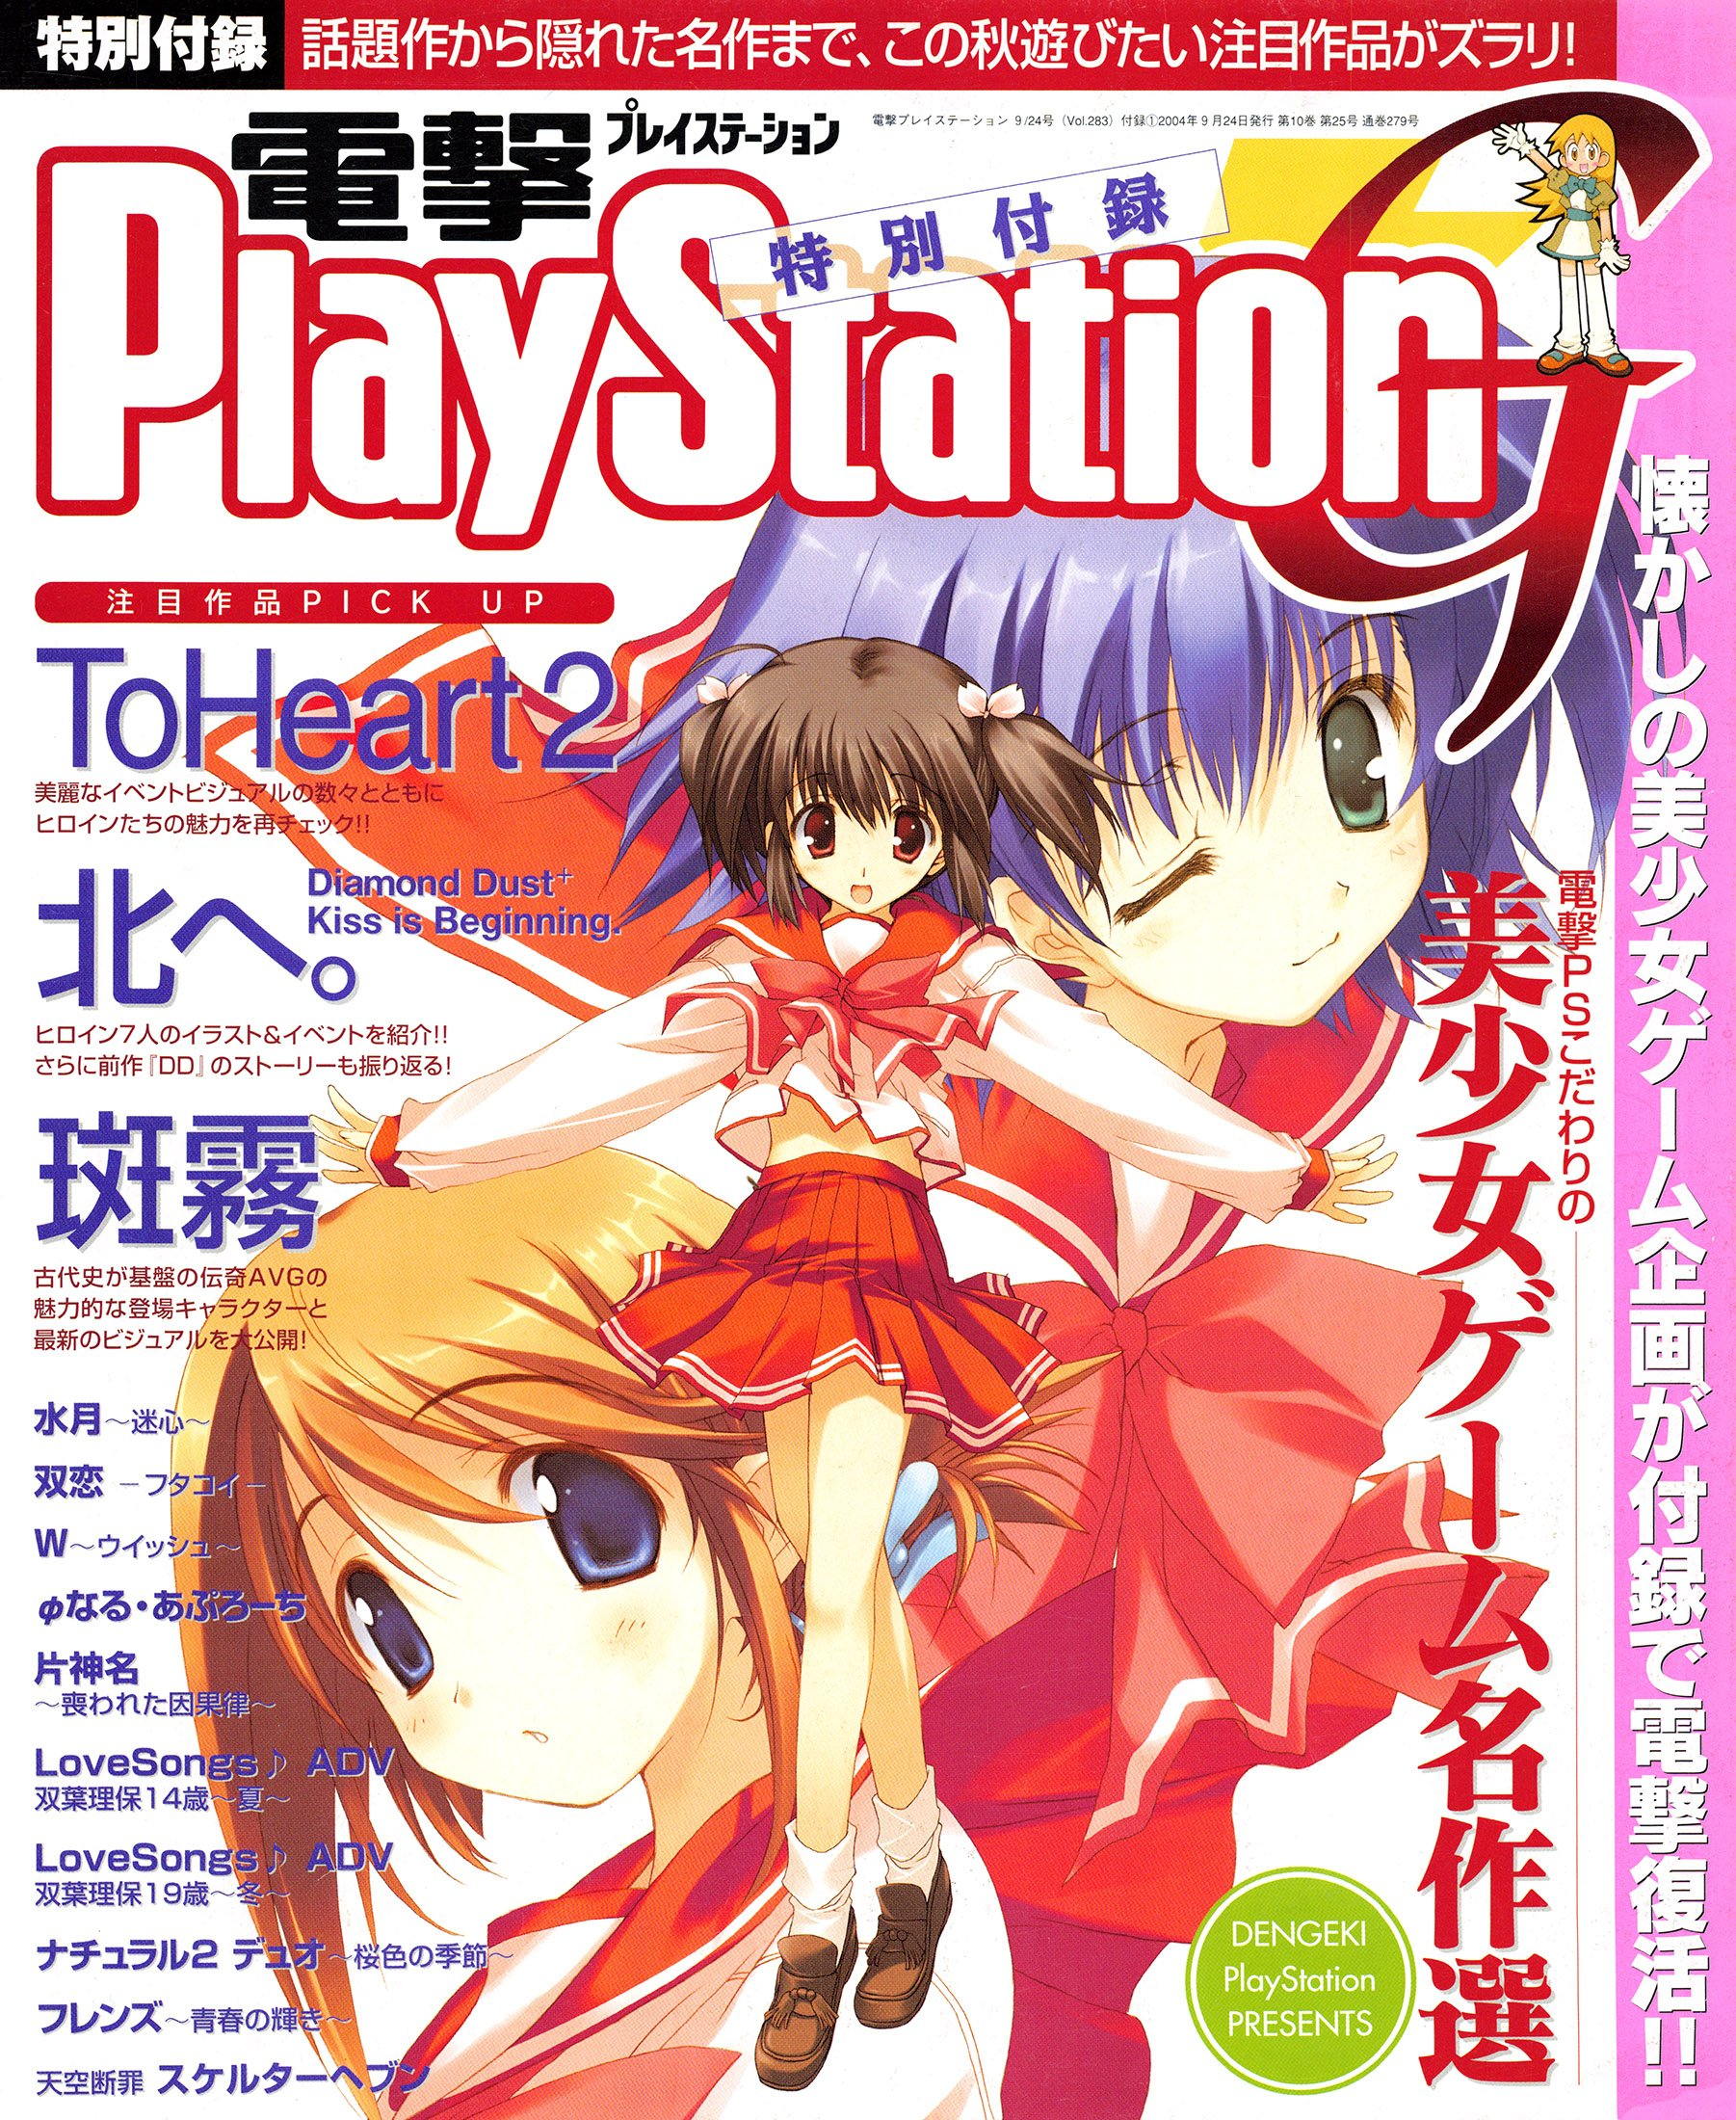 Dengeki PlayStation G (Vol.283 supplement) (September 24, 2004)